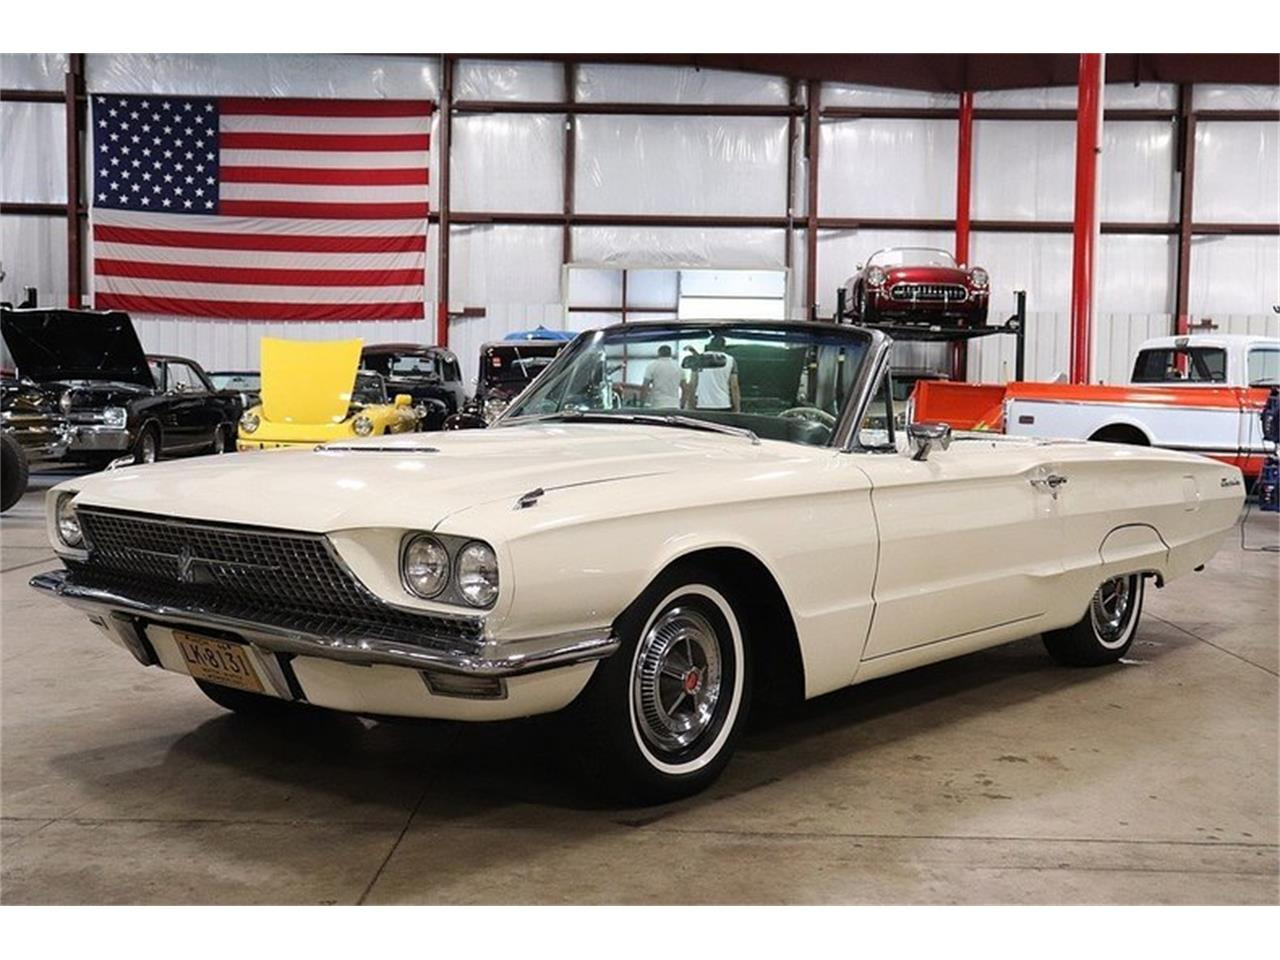 Used Ford Thunderbird for Sale - Special Offers | Edmunds